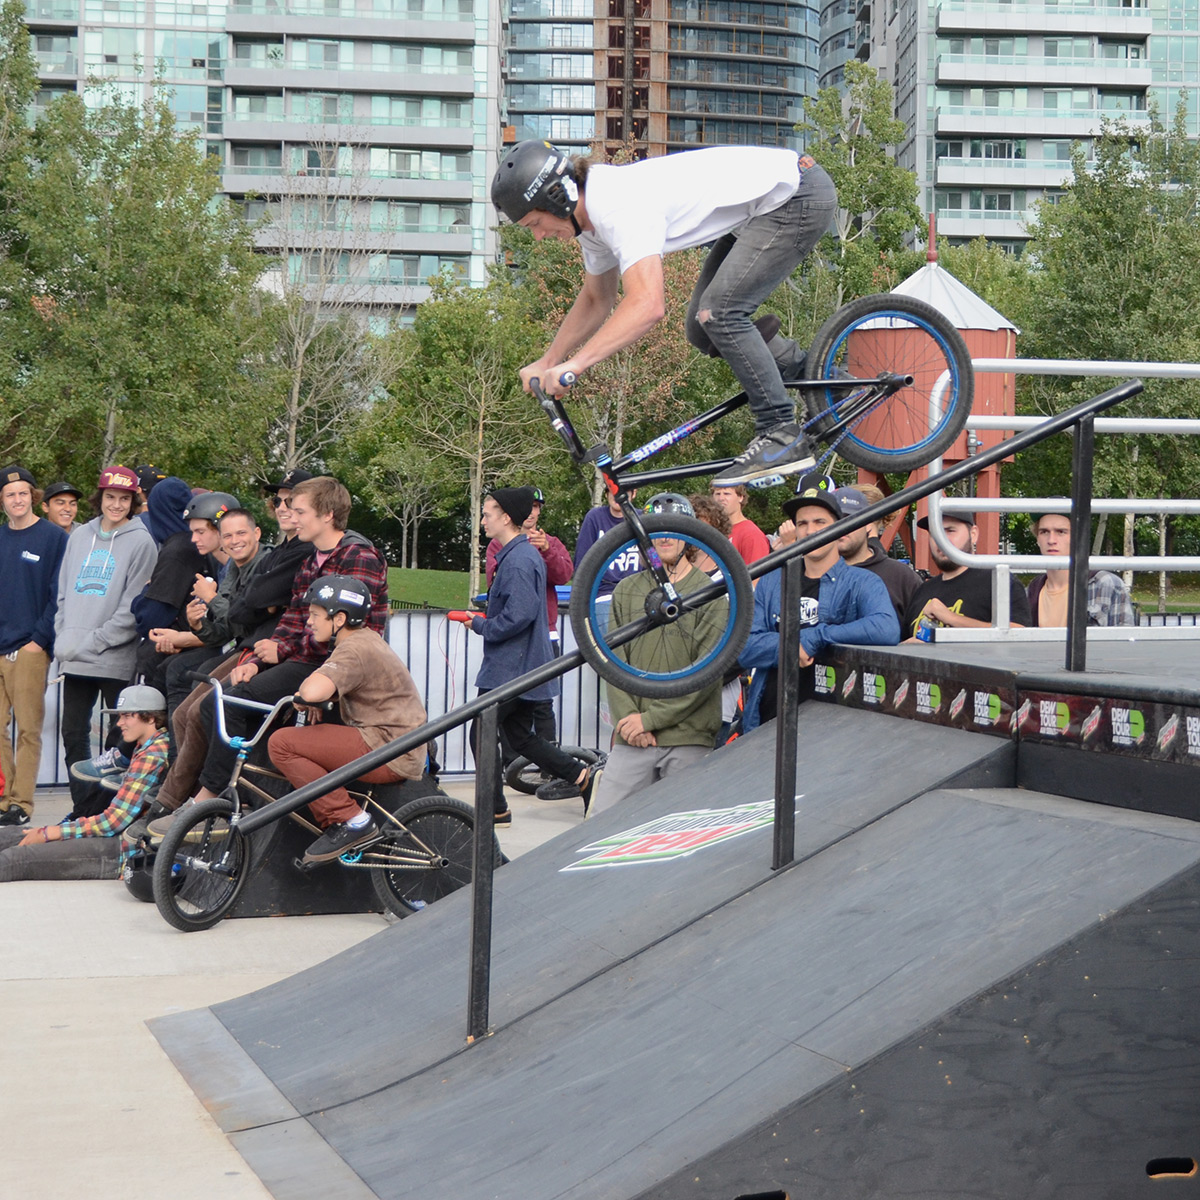 Tooth grind at BMX Dew Tour Am Series in Toronto